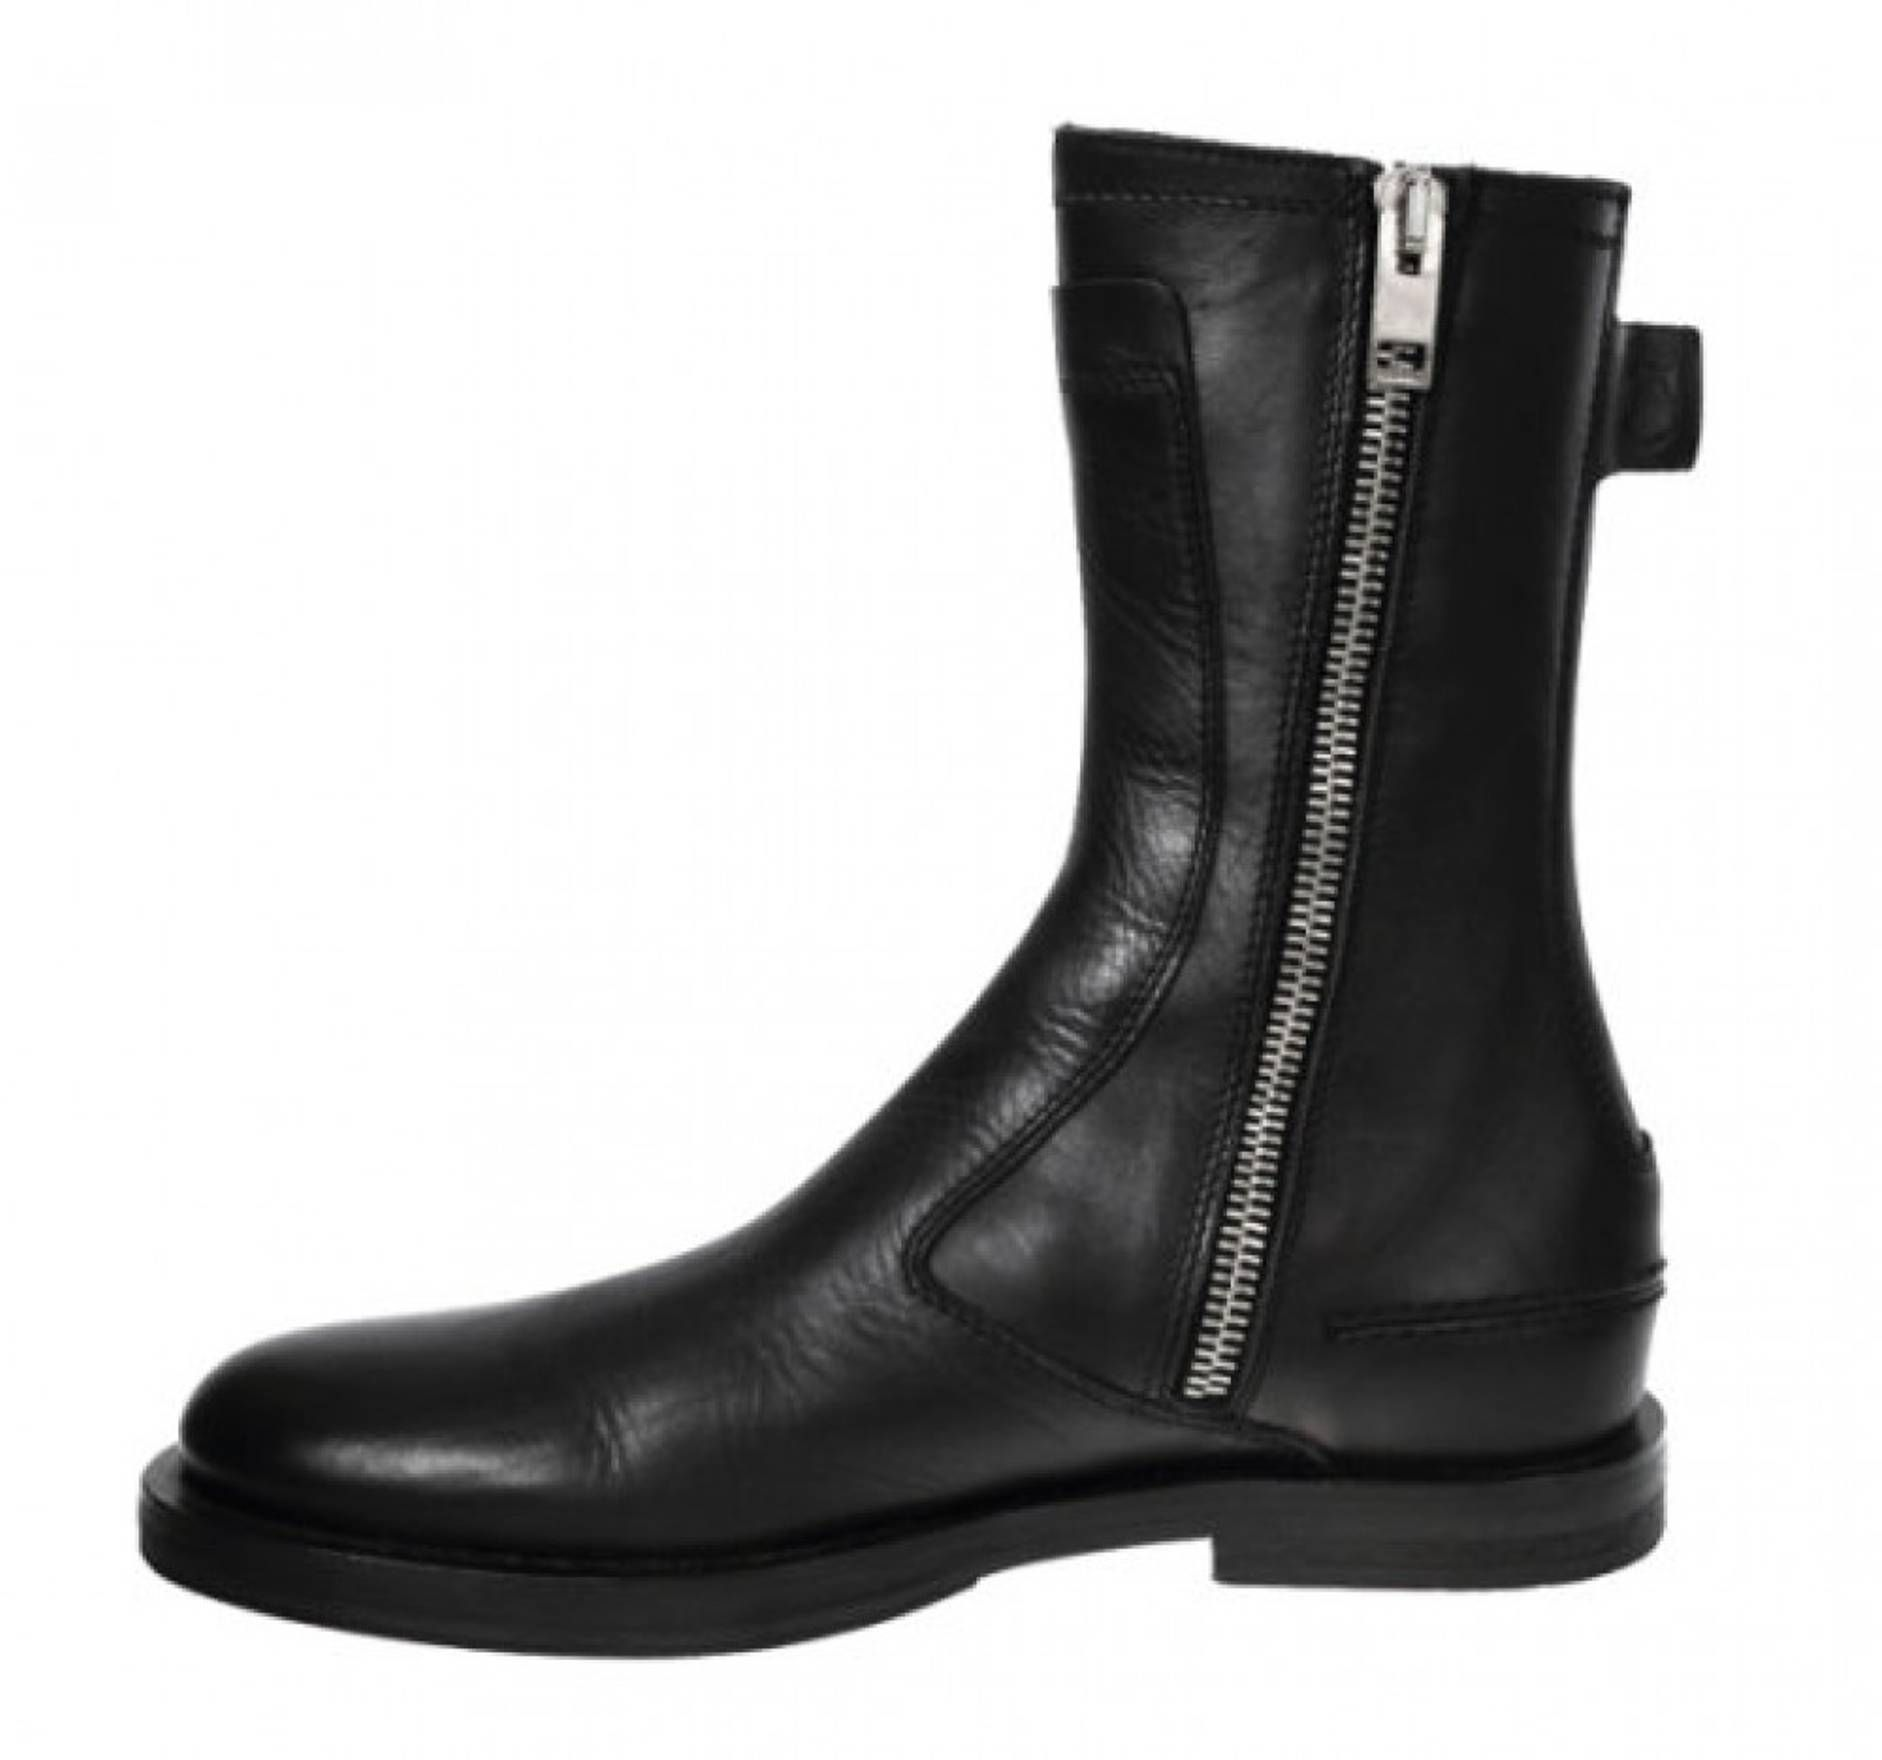 ac7463bb8de0 Dior Homme 04AW Boots VOTC   S H O E S   Dior homme, Dior, Boots